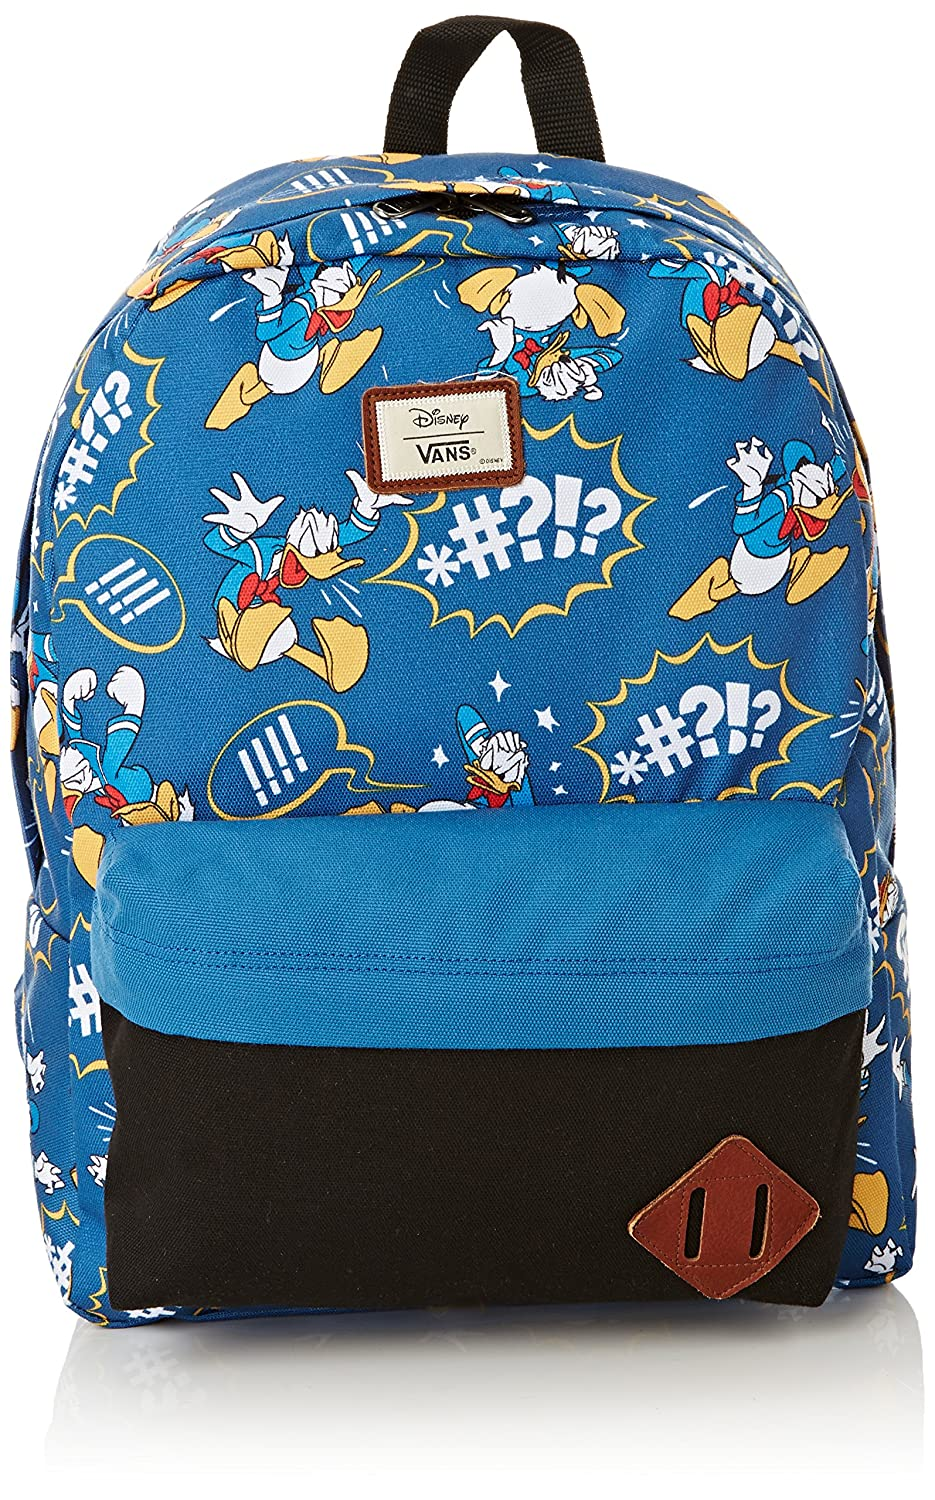 Épaule Backp Skool M donald Multicolore Vans Porté Ii Old Sac F0PnfUH